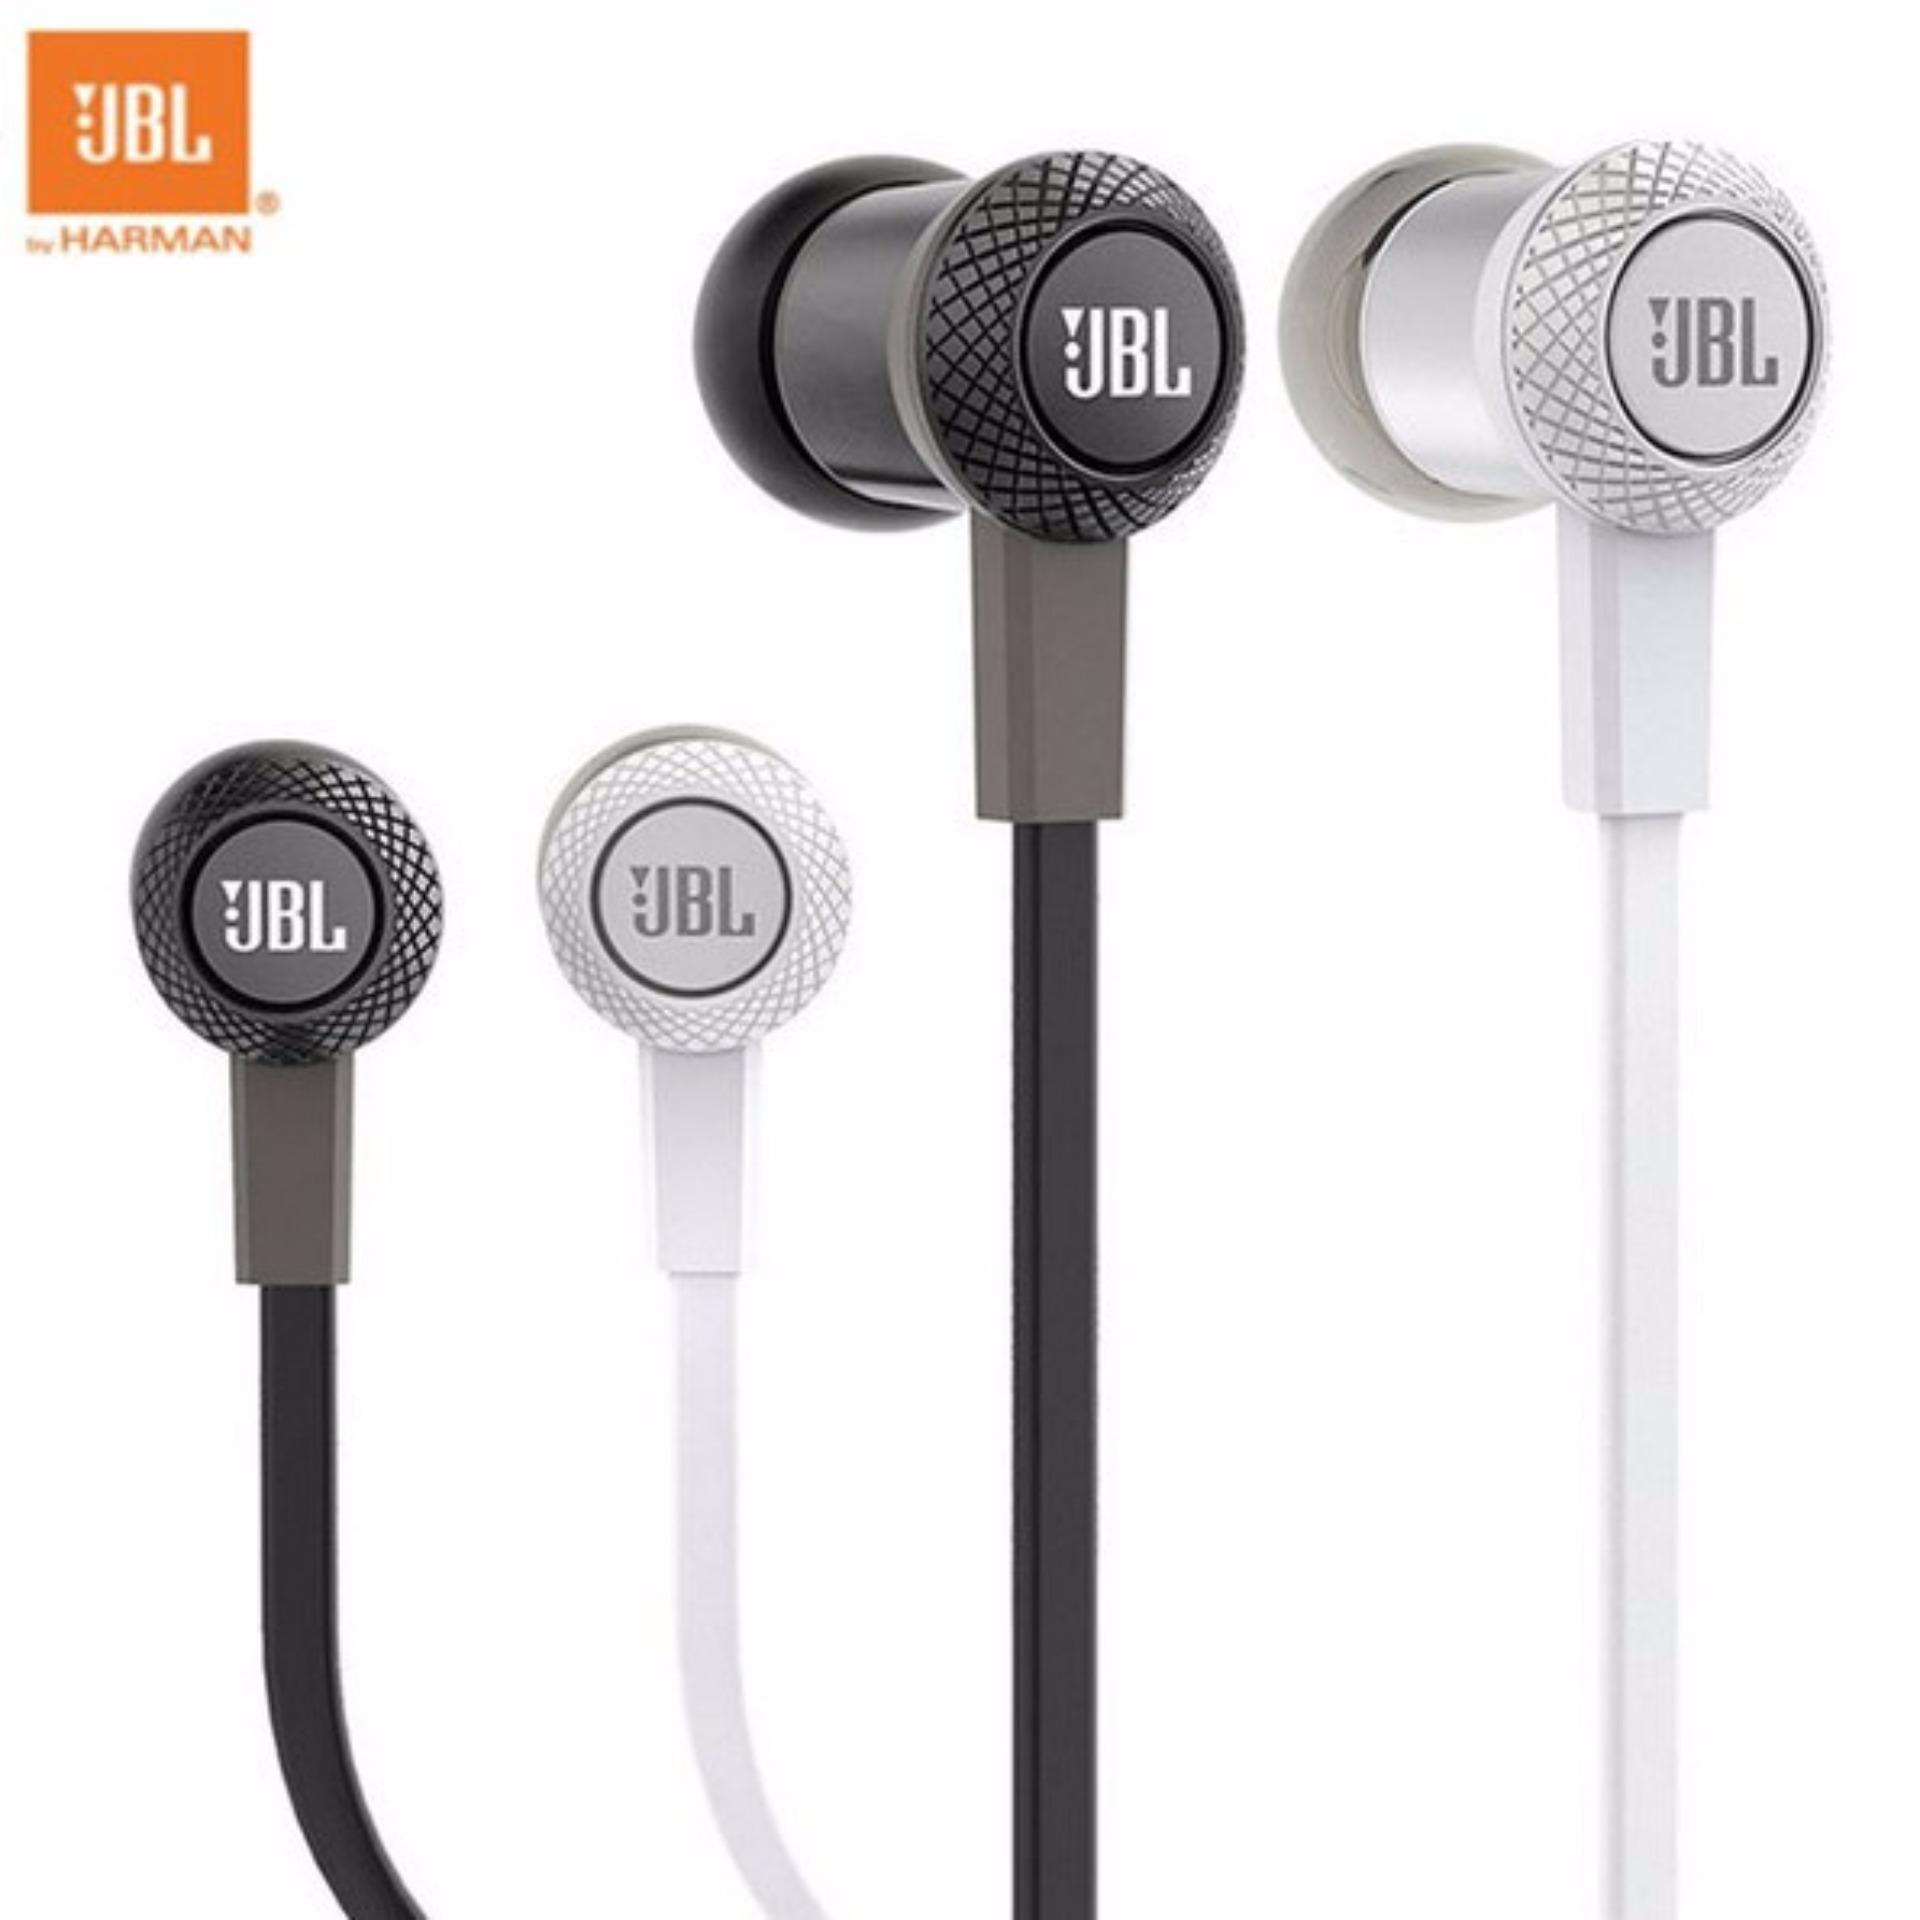 Jbl In Ear Headphonehandsfree Type C100si Original By Harman Hitam T110 Headphone With Pure Bass Microphone And Flat Cable Earphone Garansi Ims Bkn Universal Headset Handsfree Jack 35mm For Xiaomi